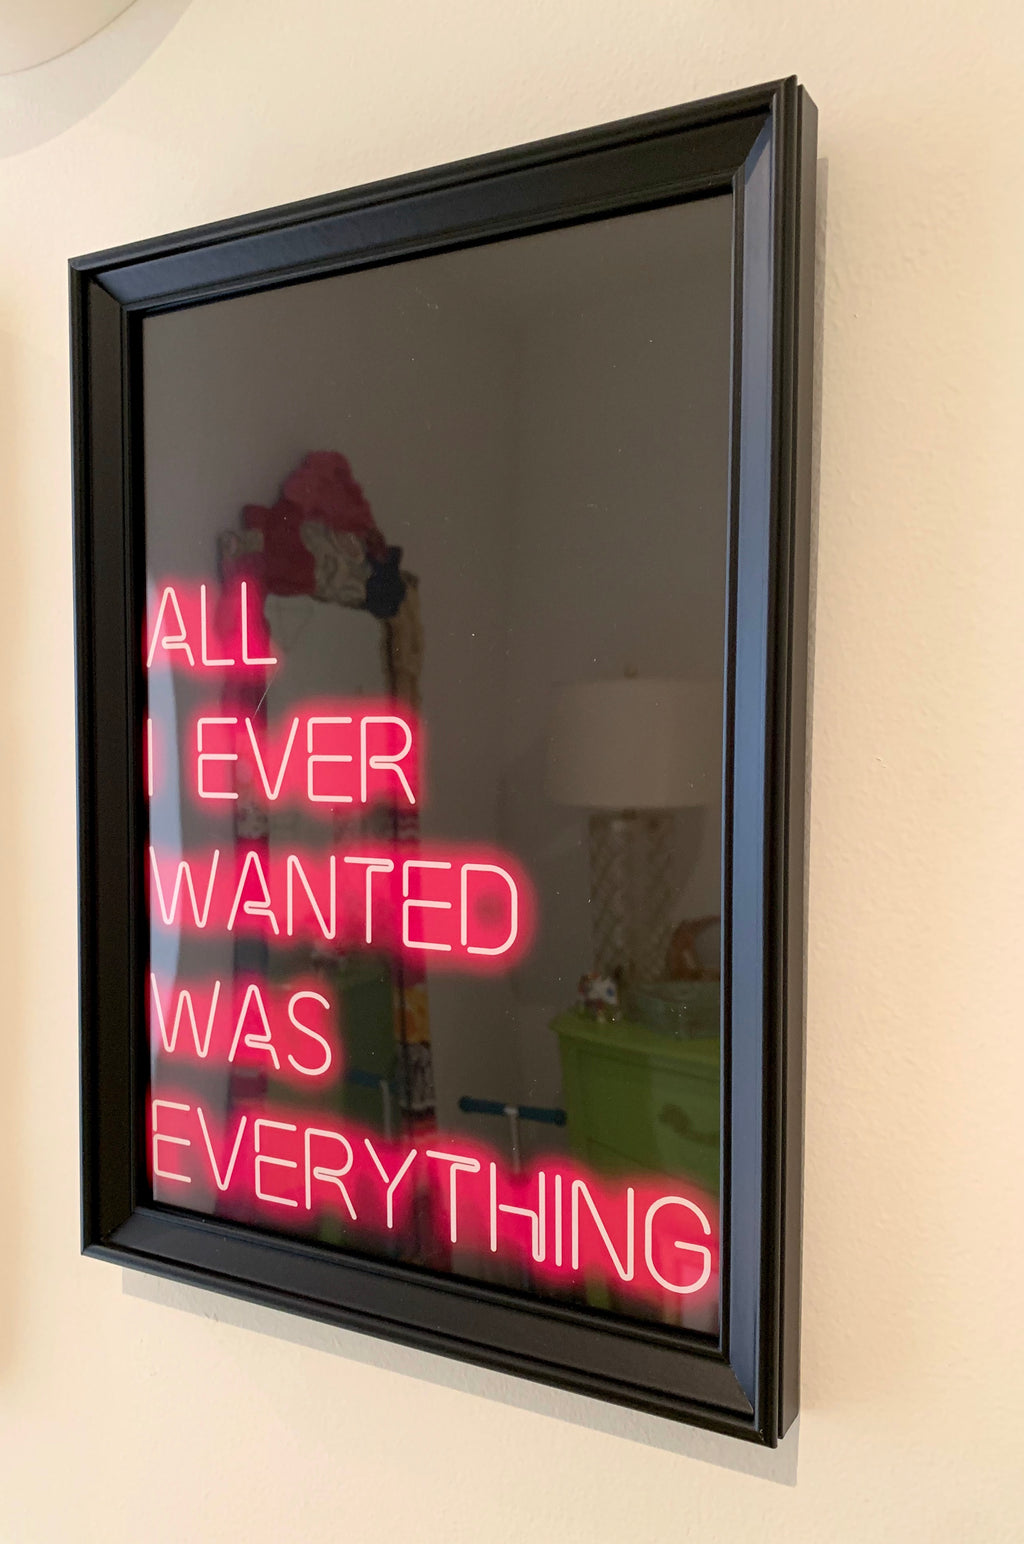 All I Ever Wanted Was Everything - Neon Art Print